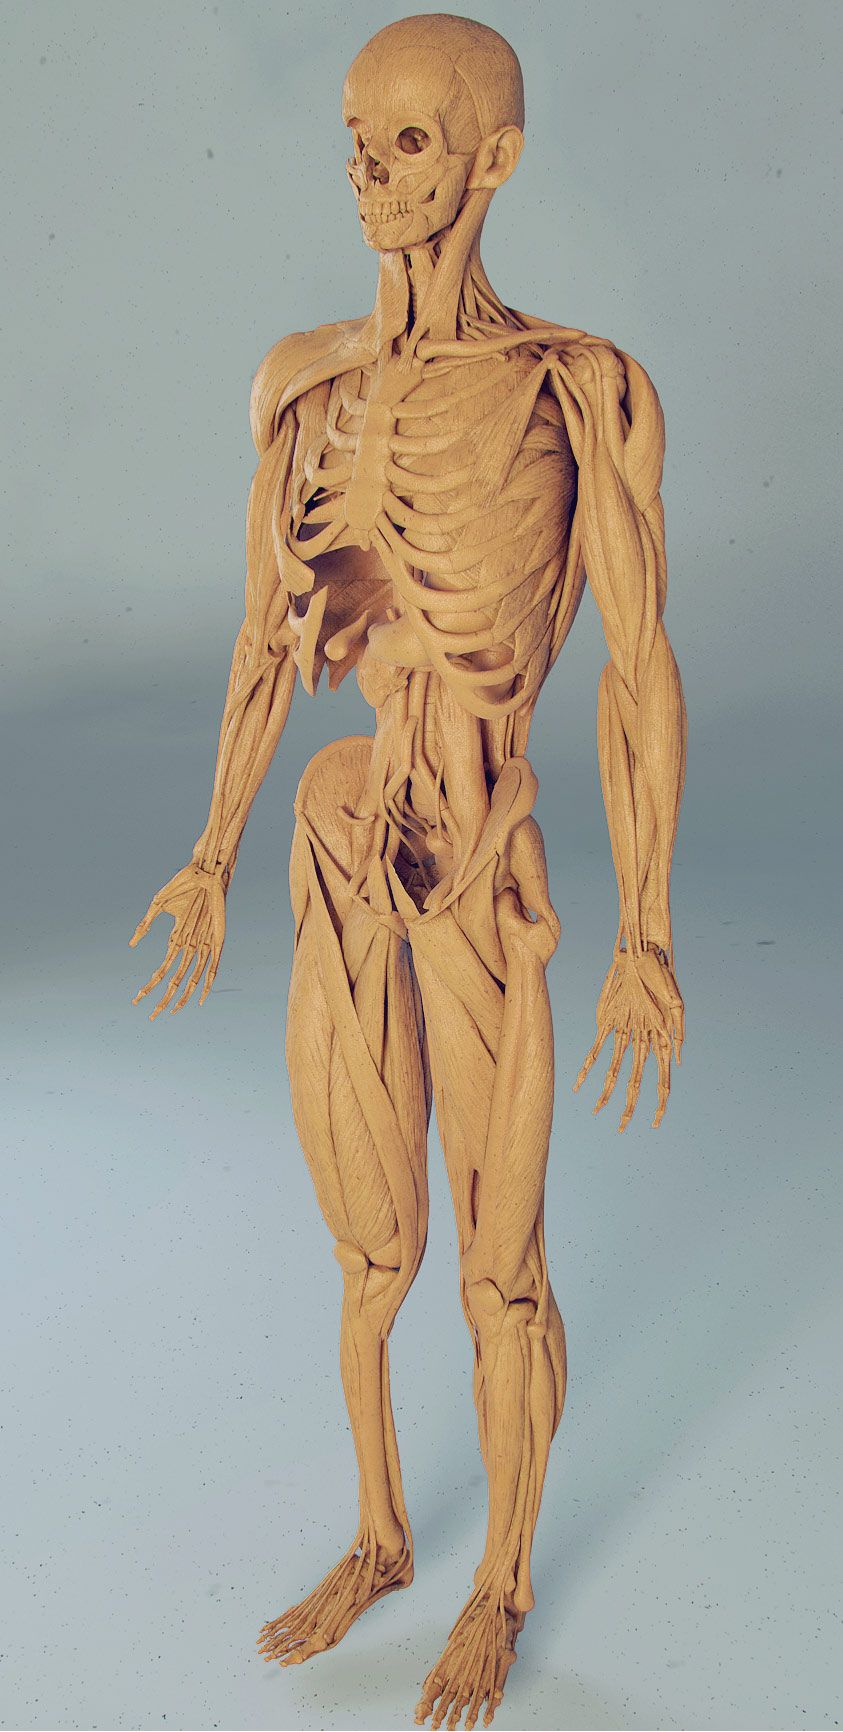 Full anatomy model free download – zbrushtuts | anatomy | Pinterest ...